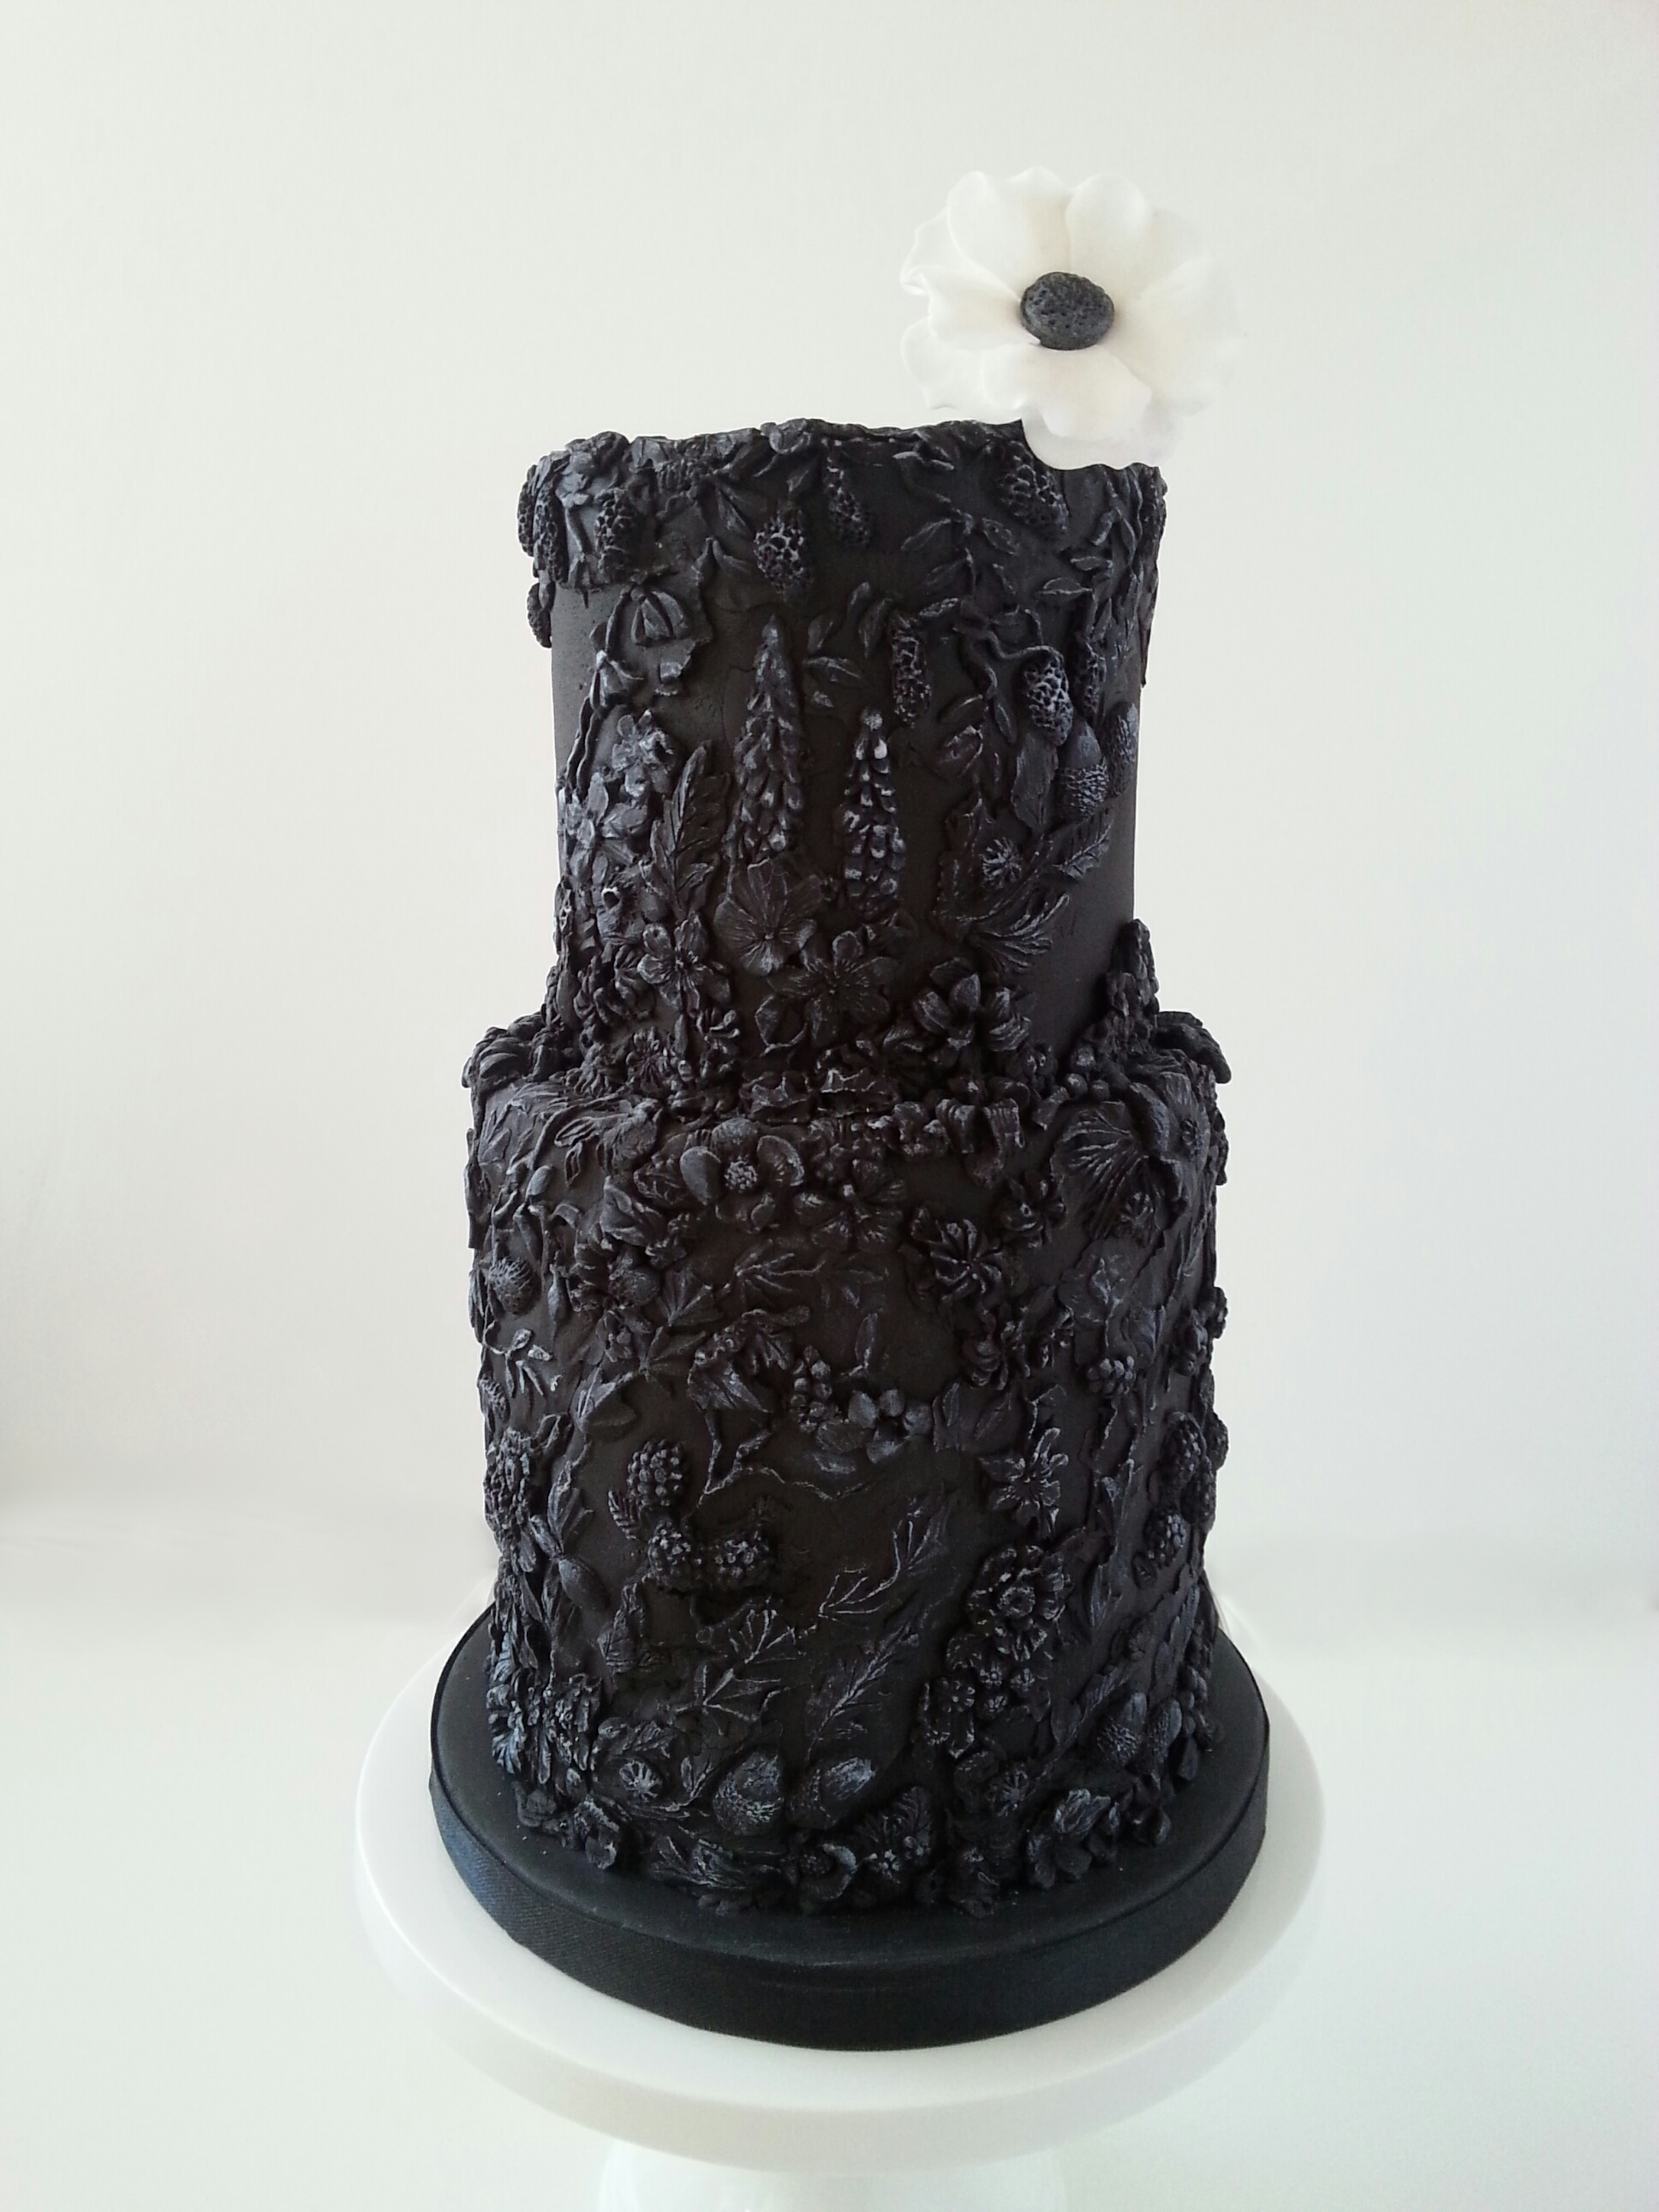 Cakes By Grannie The Latest News With Photos - Wedding Cakes Hobart